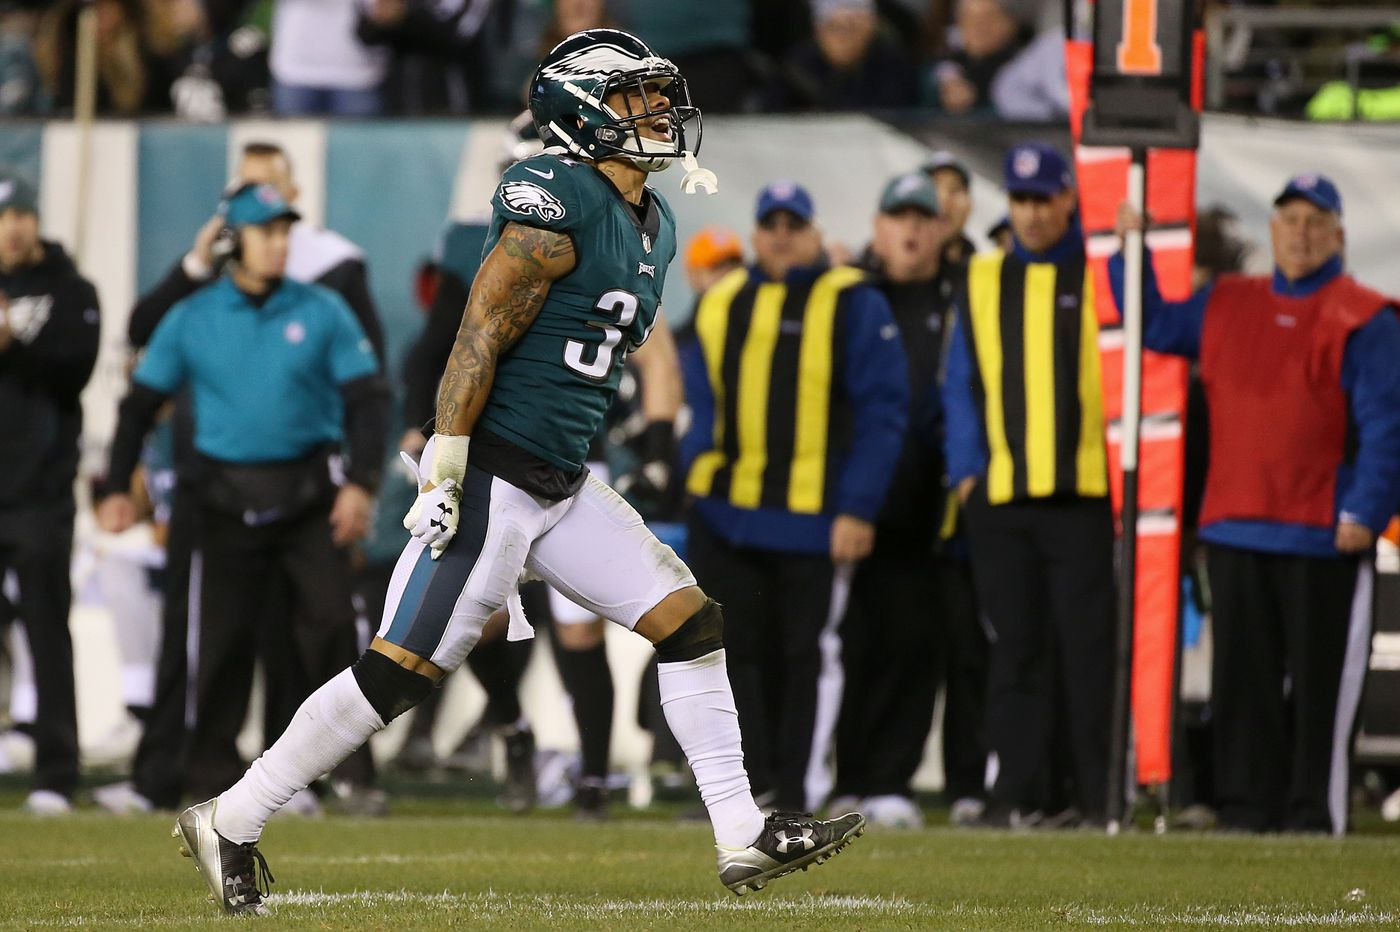 Cre'Von LeBlanc was surprised Eagles released him to clear roster spot last weekend, but he chose to return